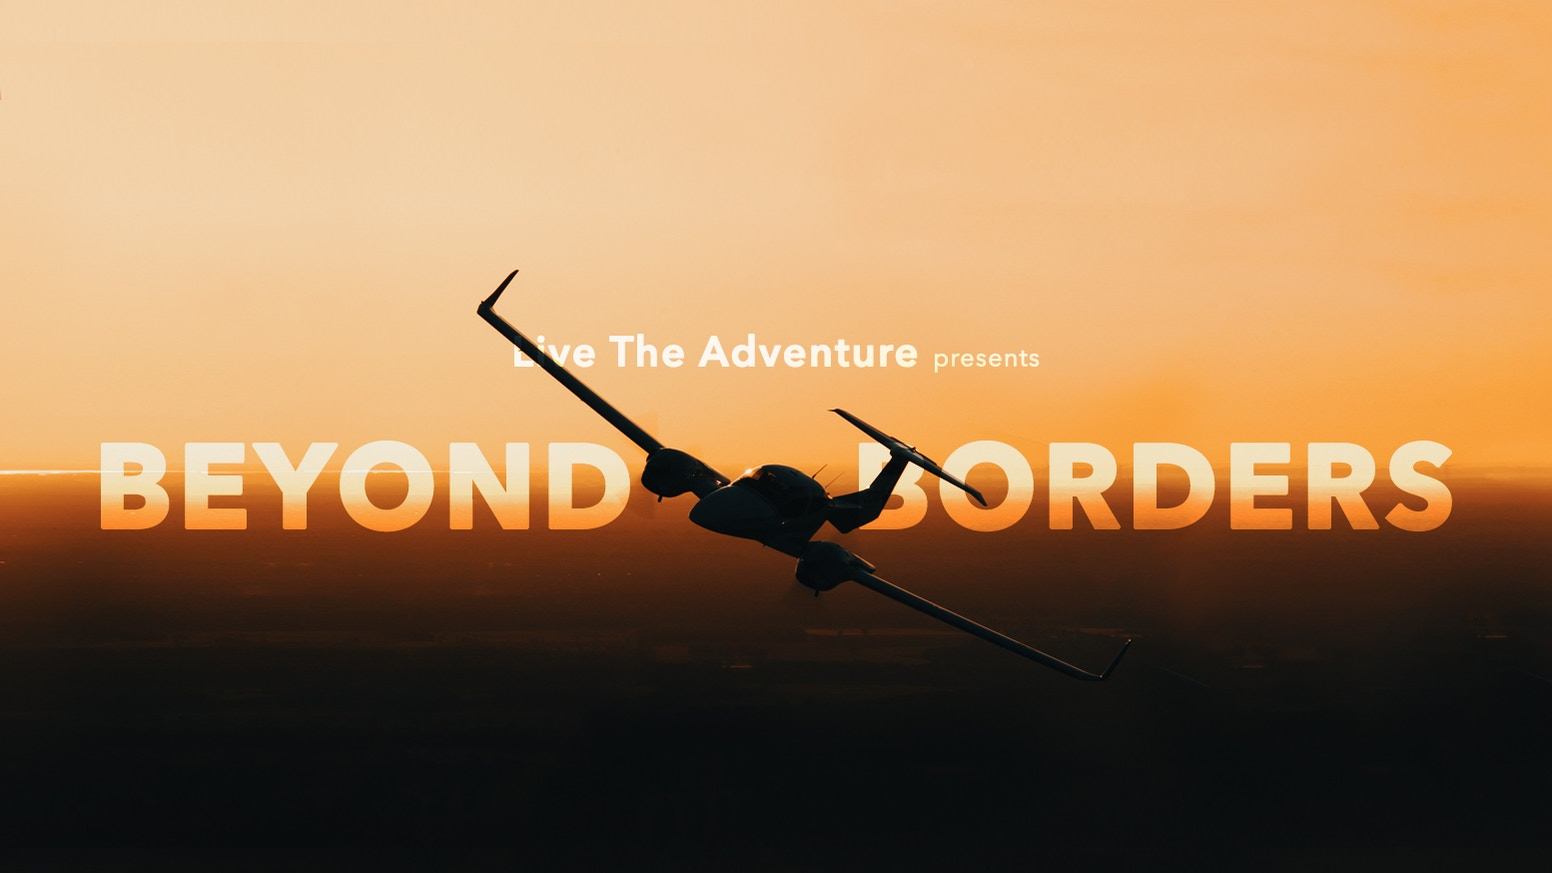 A film that follows a global circumnavigation by two friends in a light aircraft as they seek beauty in individual people and cultures.